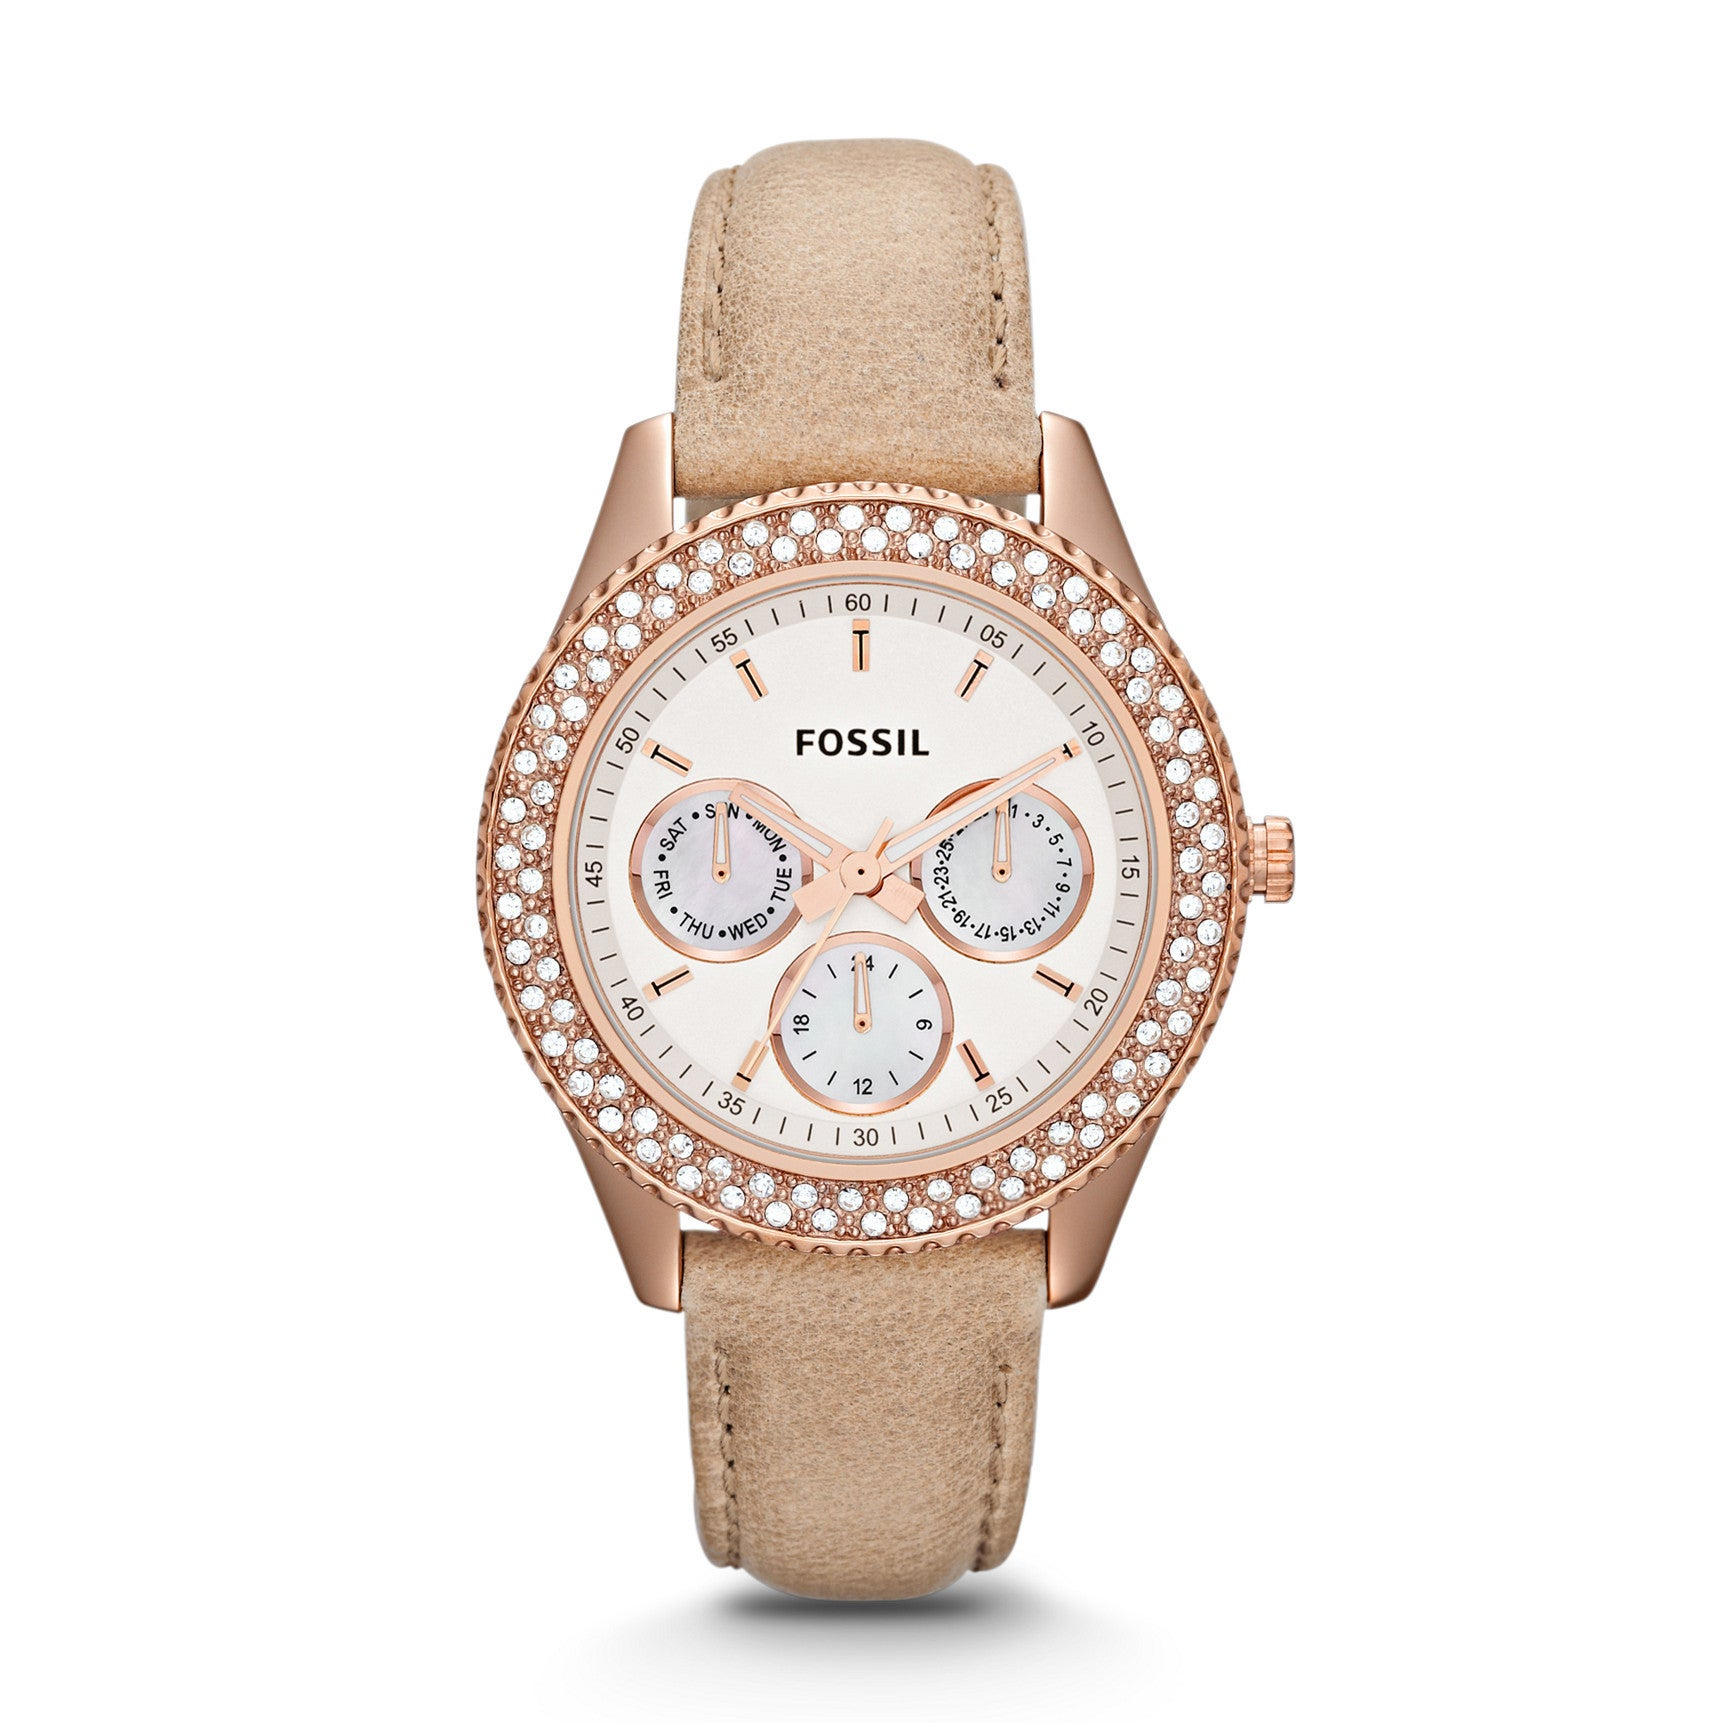 Fossil Women's ES3104 'Stella' Chronograph Leather Watch,...